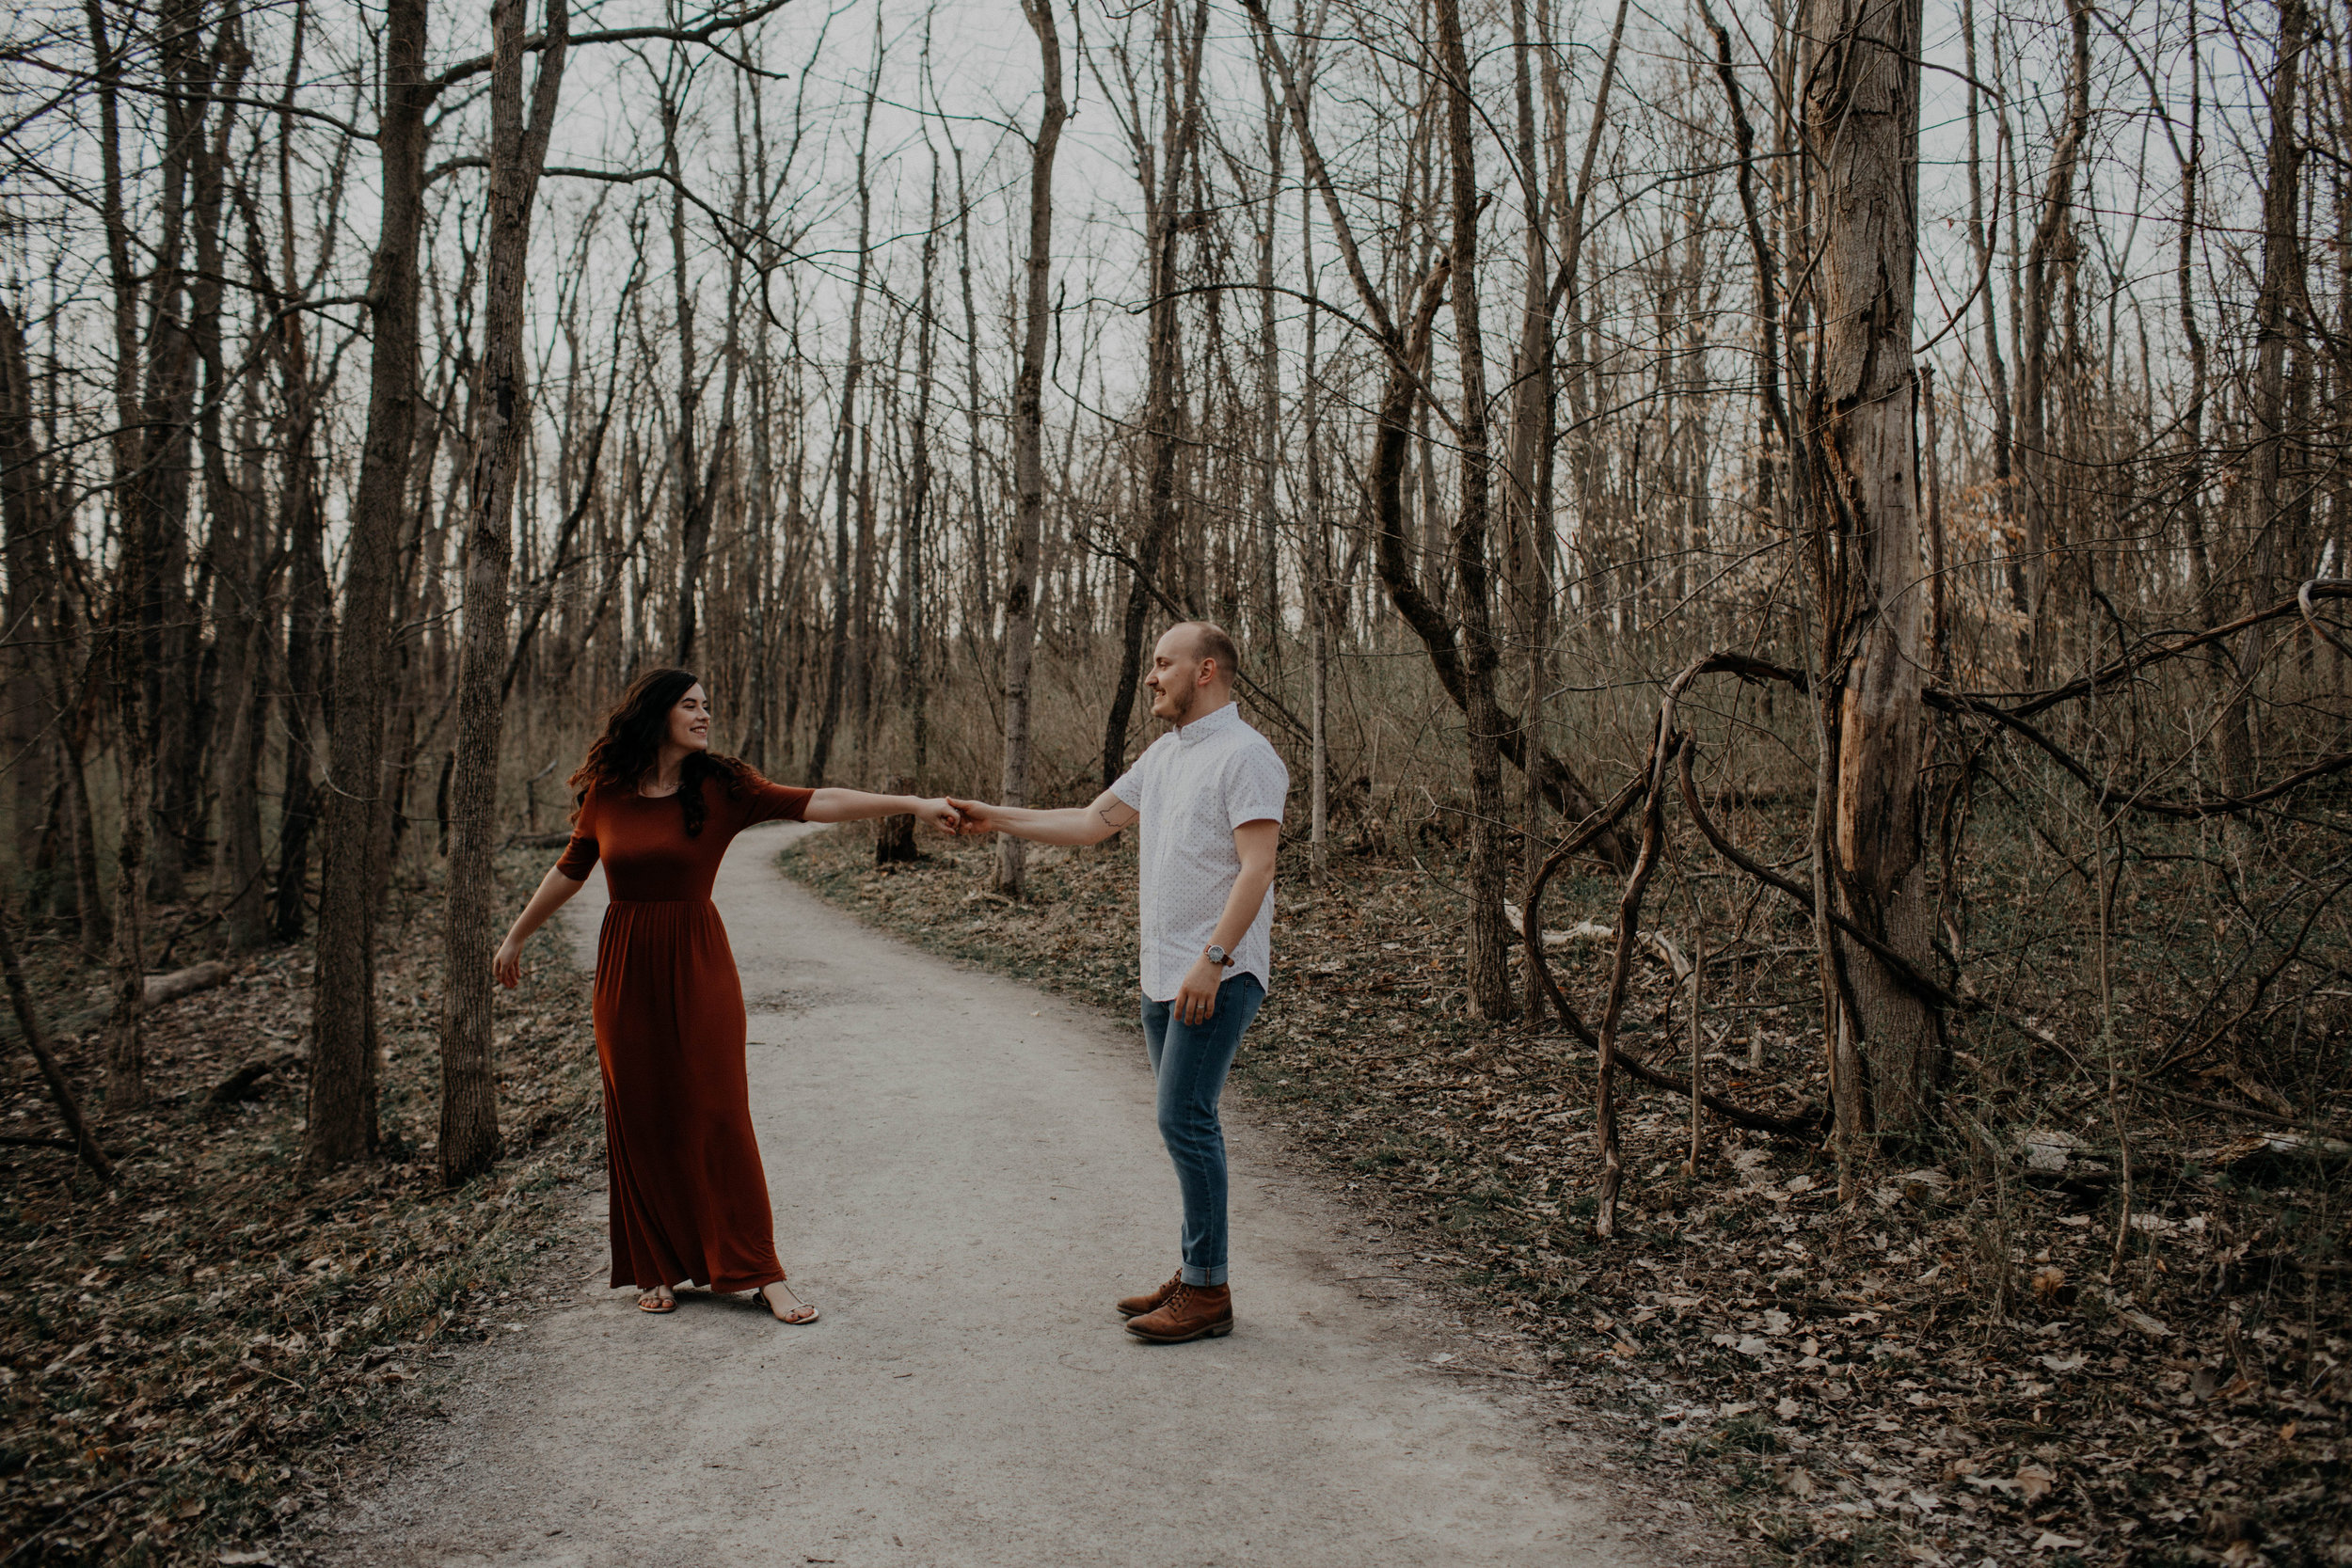 highbanks metro park columbus ohio wedding and couples session photographer40.jpg